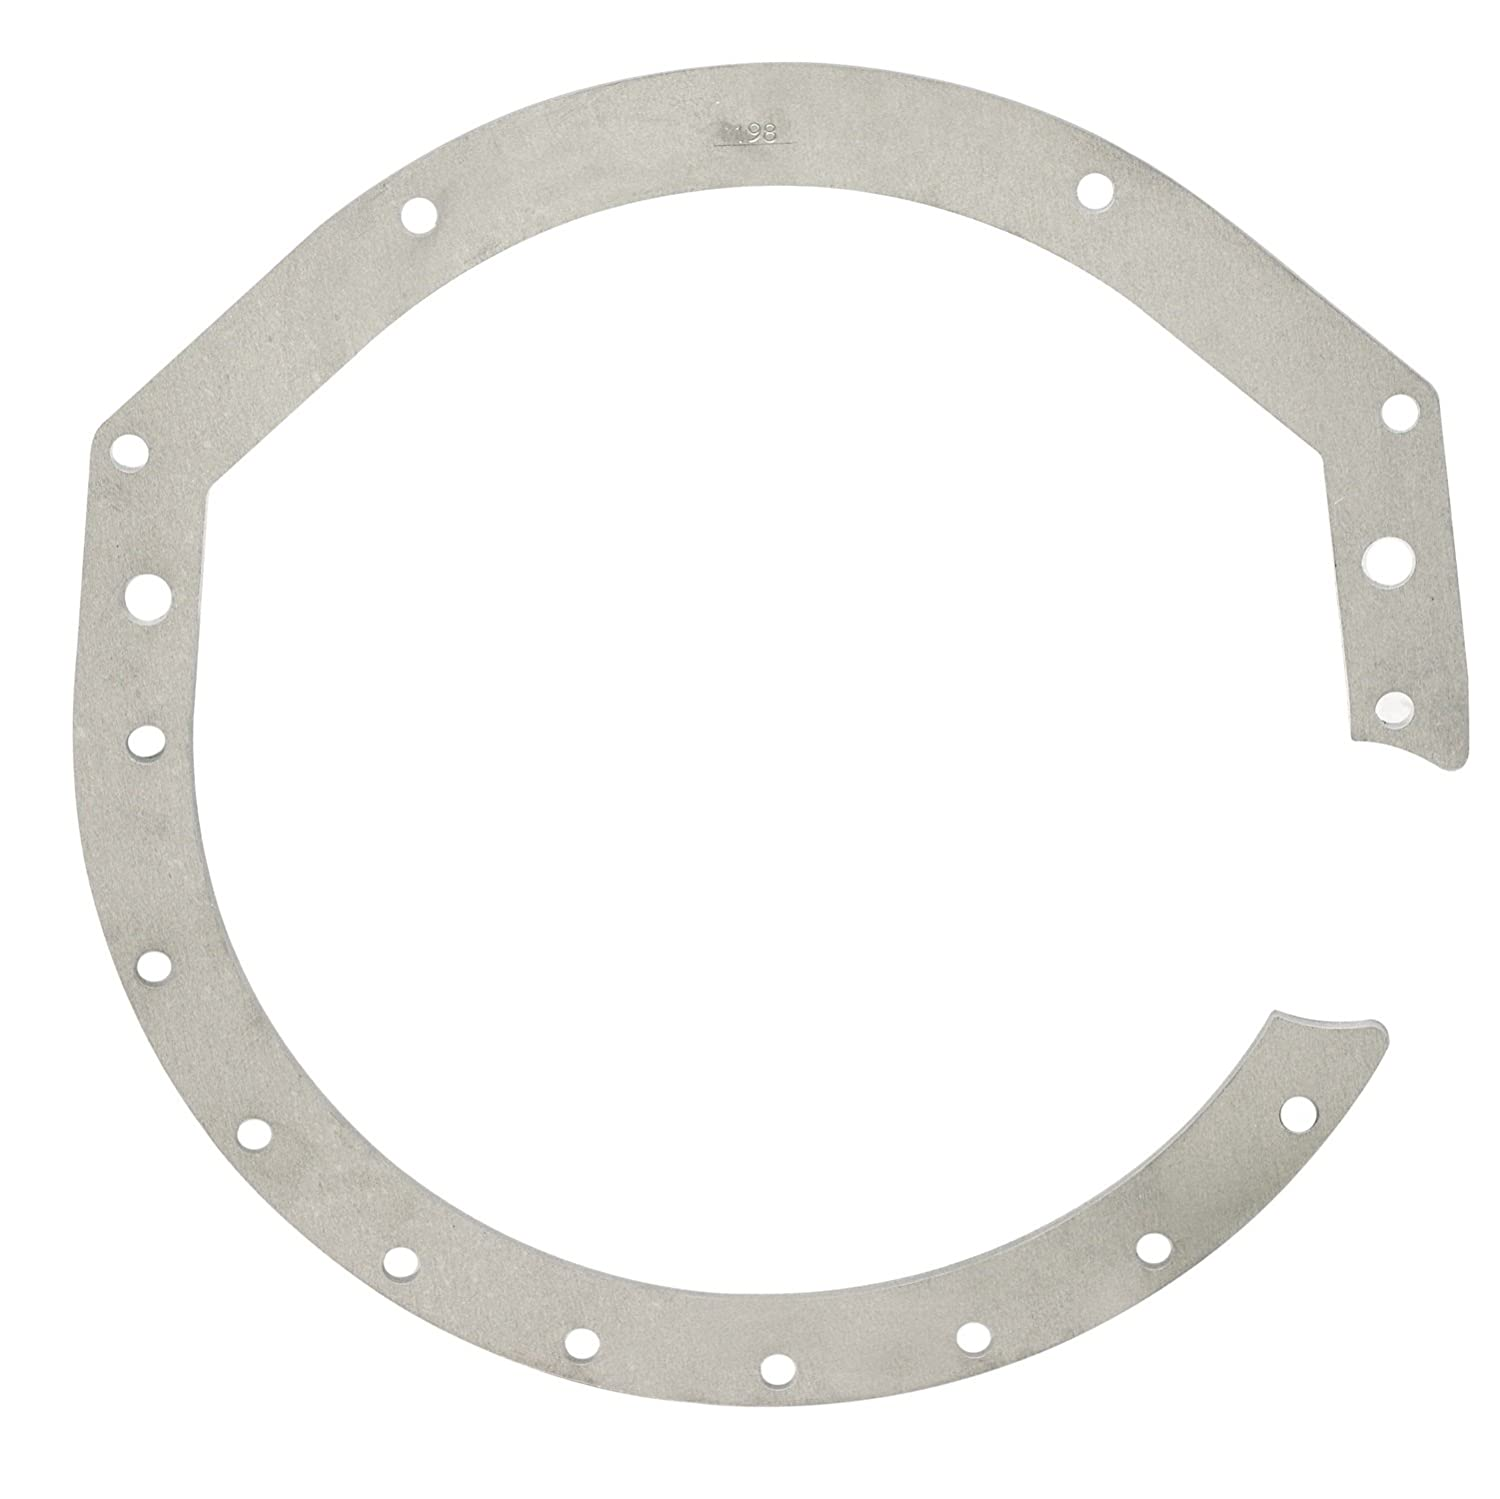 QuickTime (RM-198) 1/4' Aluminum Engine Spacer for Chevy Quick Time Performance